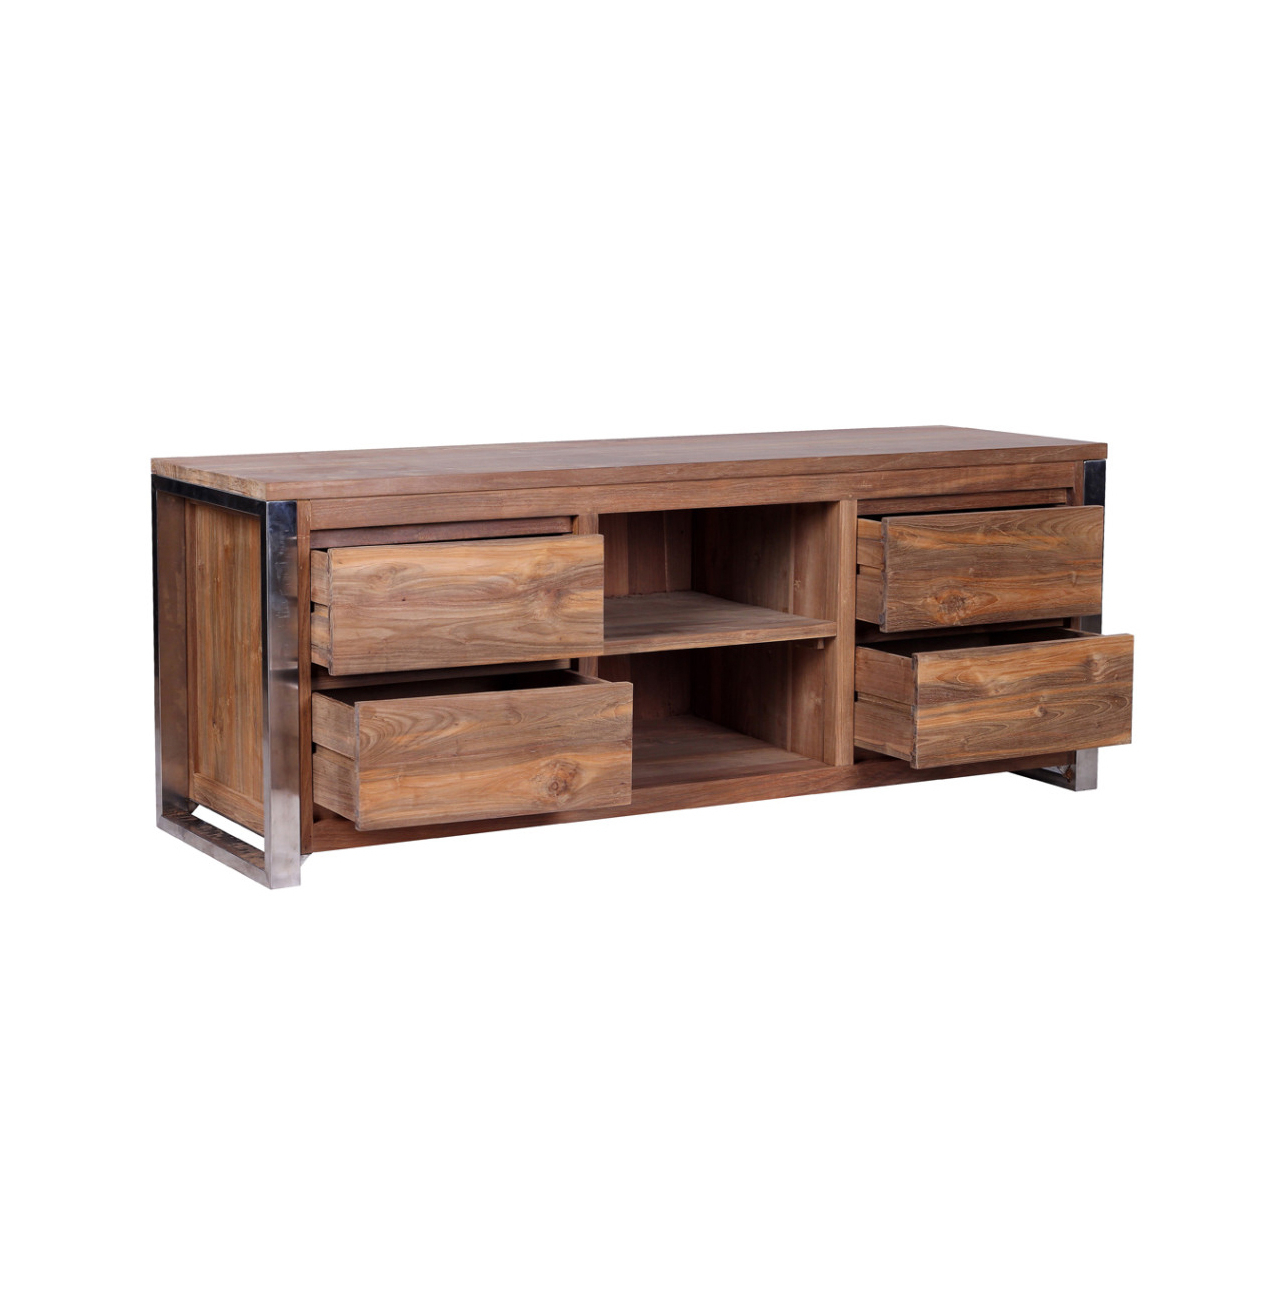 Rarem Reclaimed Wood Tv Stand – Reclaimed Teak And Stainless Steel Intended For 2018 Recycled Wood Tv Stands (Gallery 1 of 20)